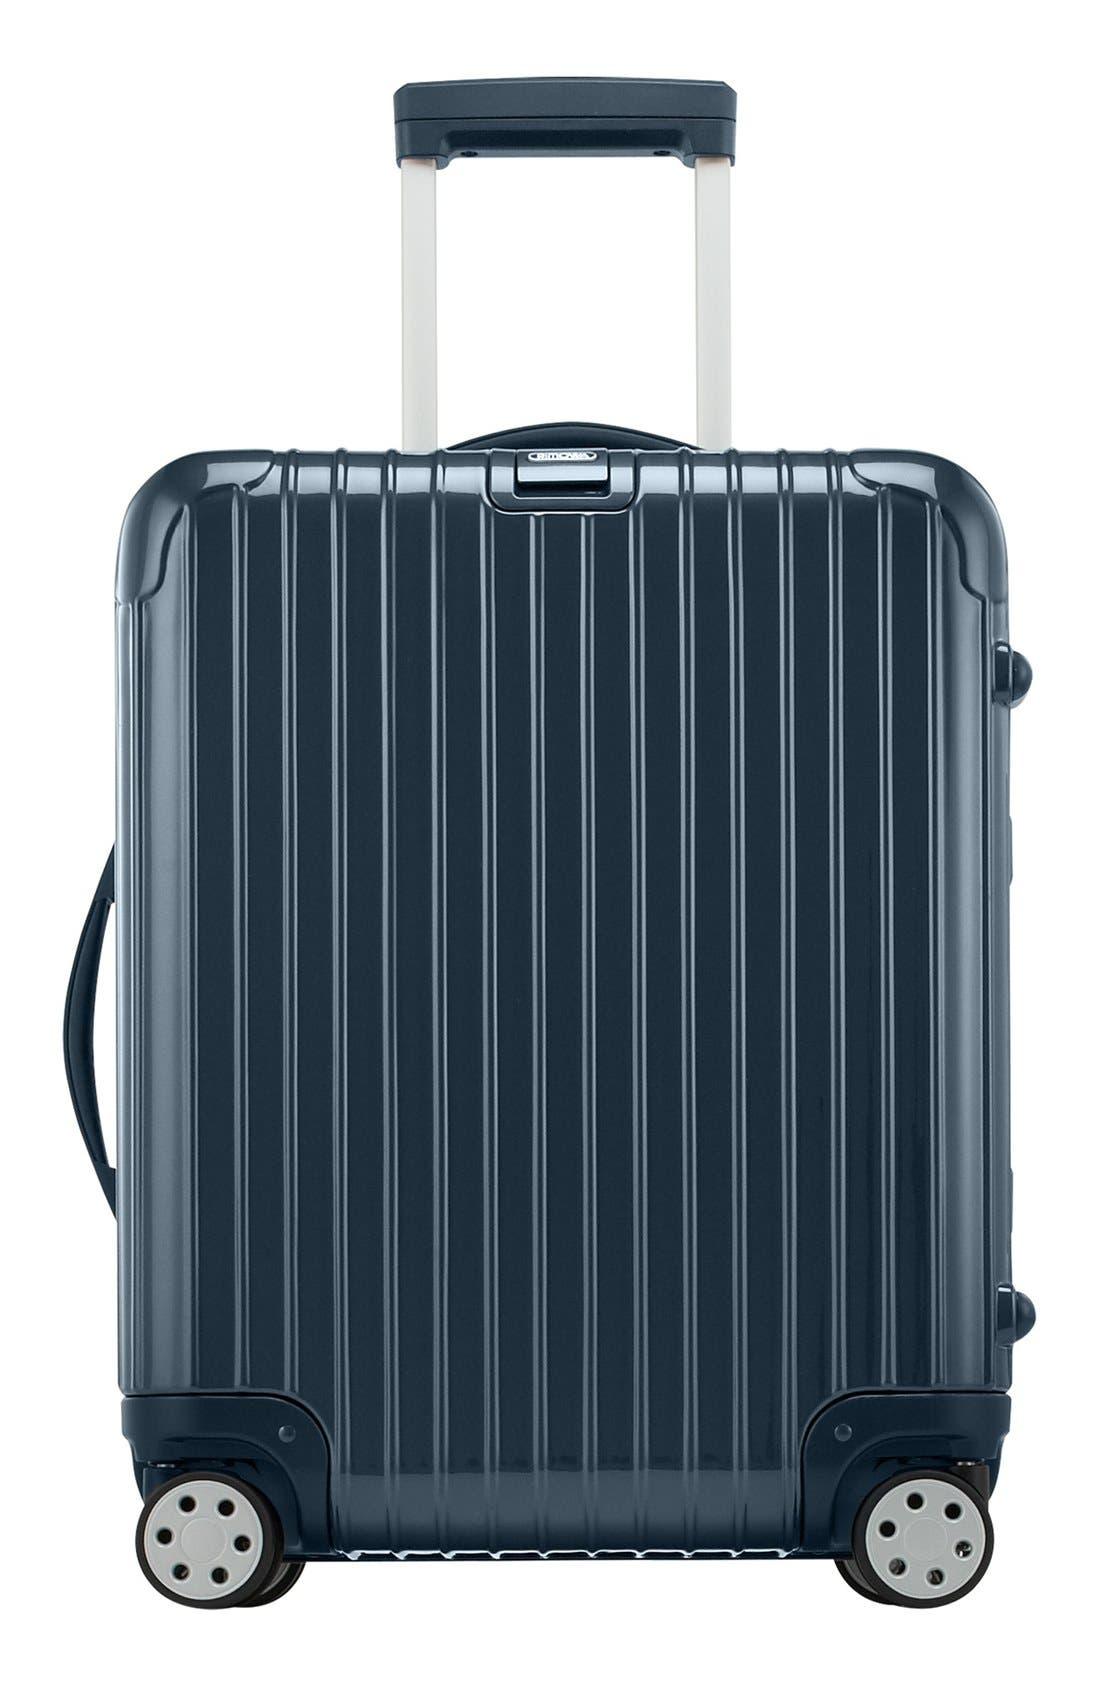 RIMOWA Salsa Deluxe 22-Inch Cabin Multiwheel® Carry-On